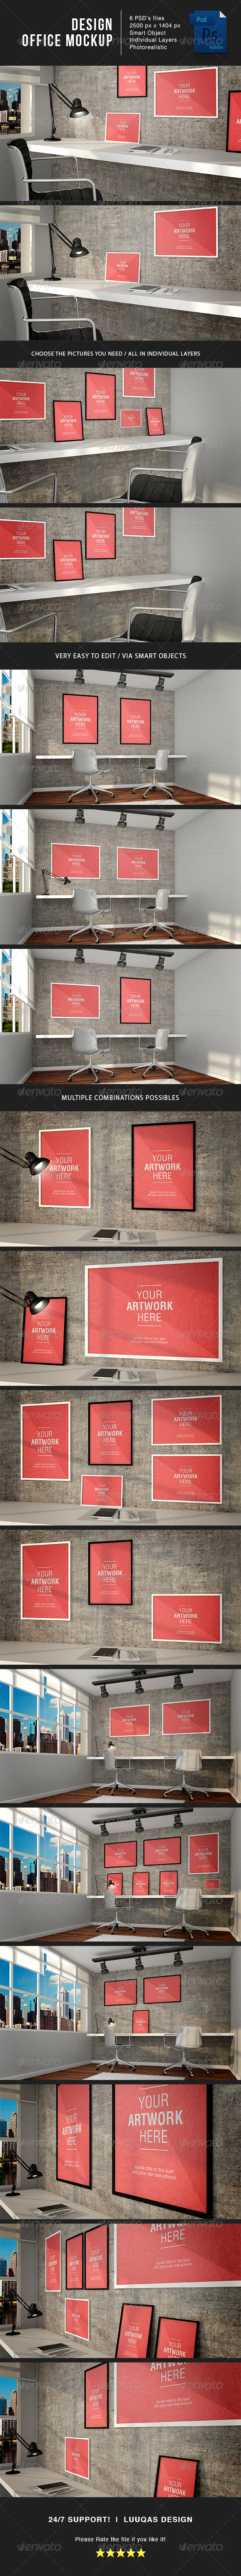 GraphicRiver Design Office MockUp 8234320